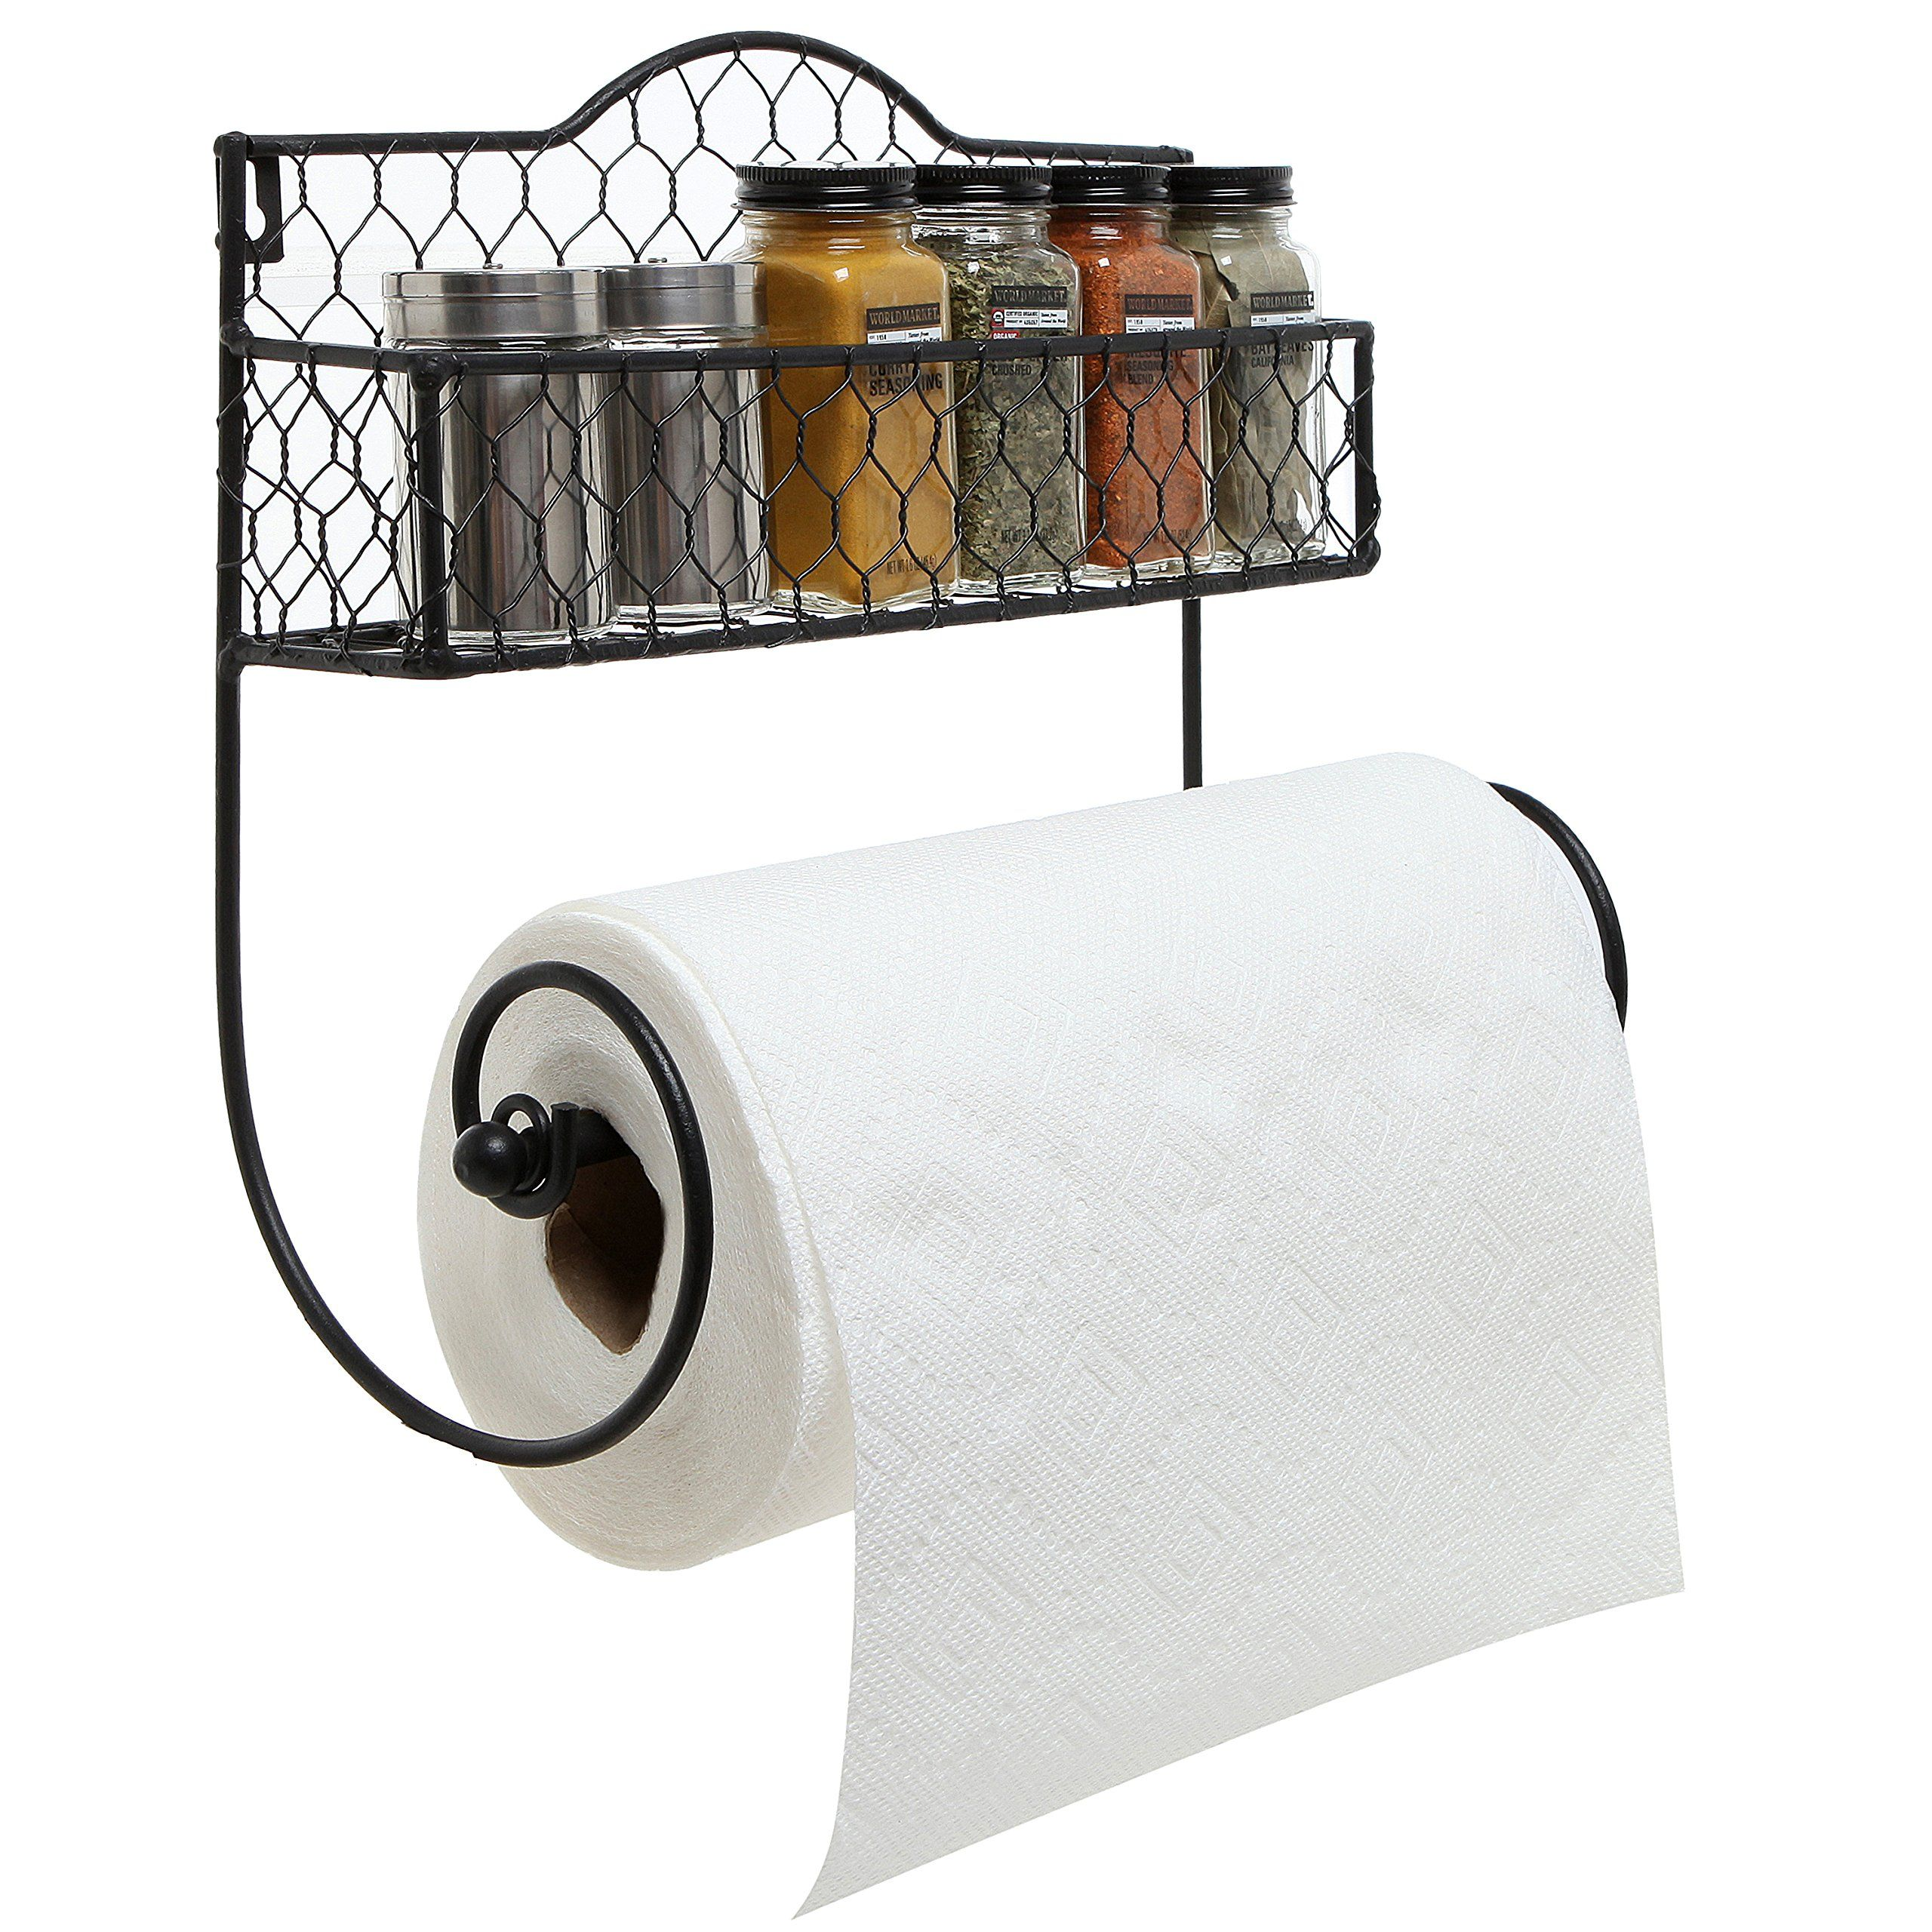 Mygift Wall Mounted Rustic Black Metal Kitchen Spice Rack And